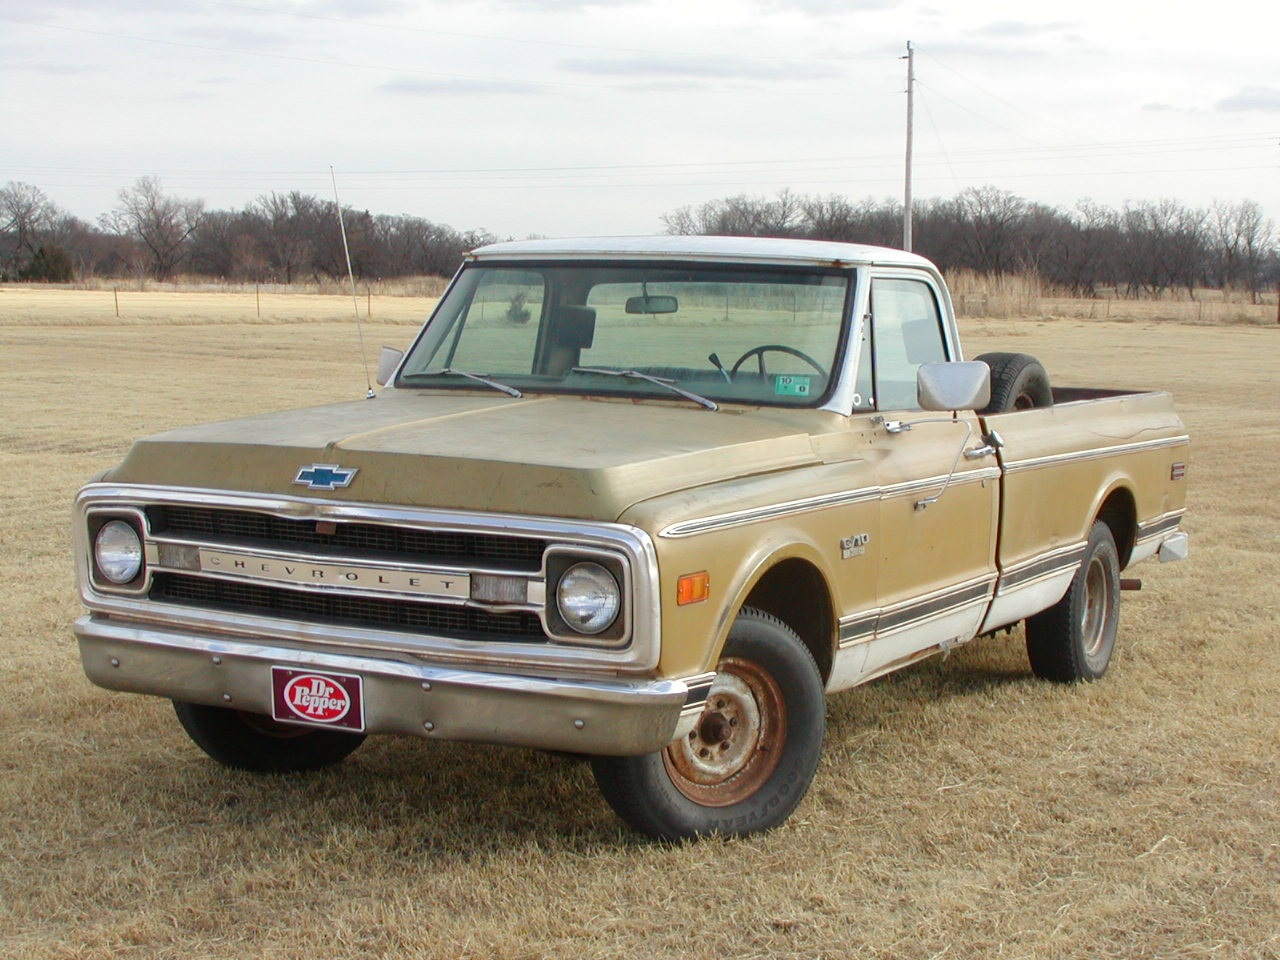 Ford Truck 1980: Review, Amazing Pictures and Images ...